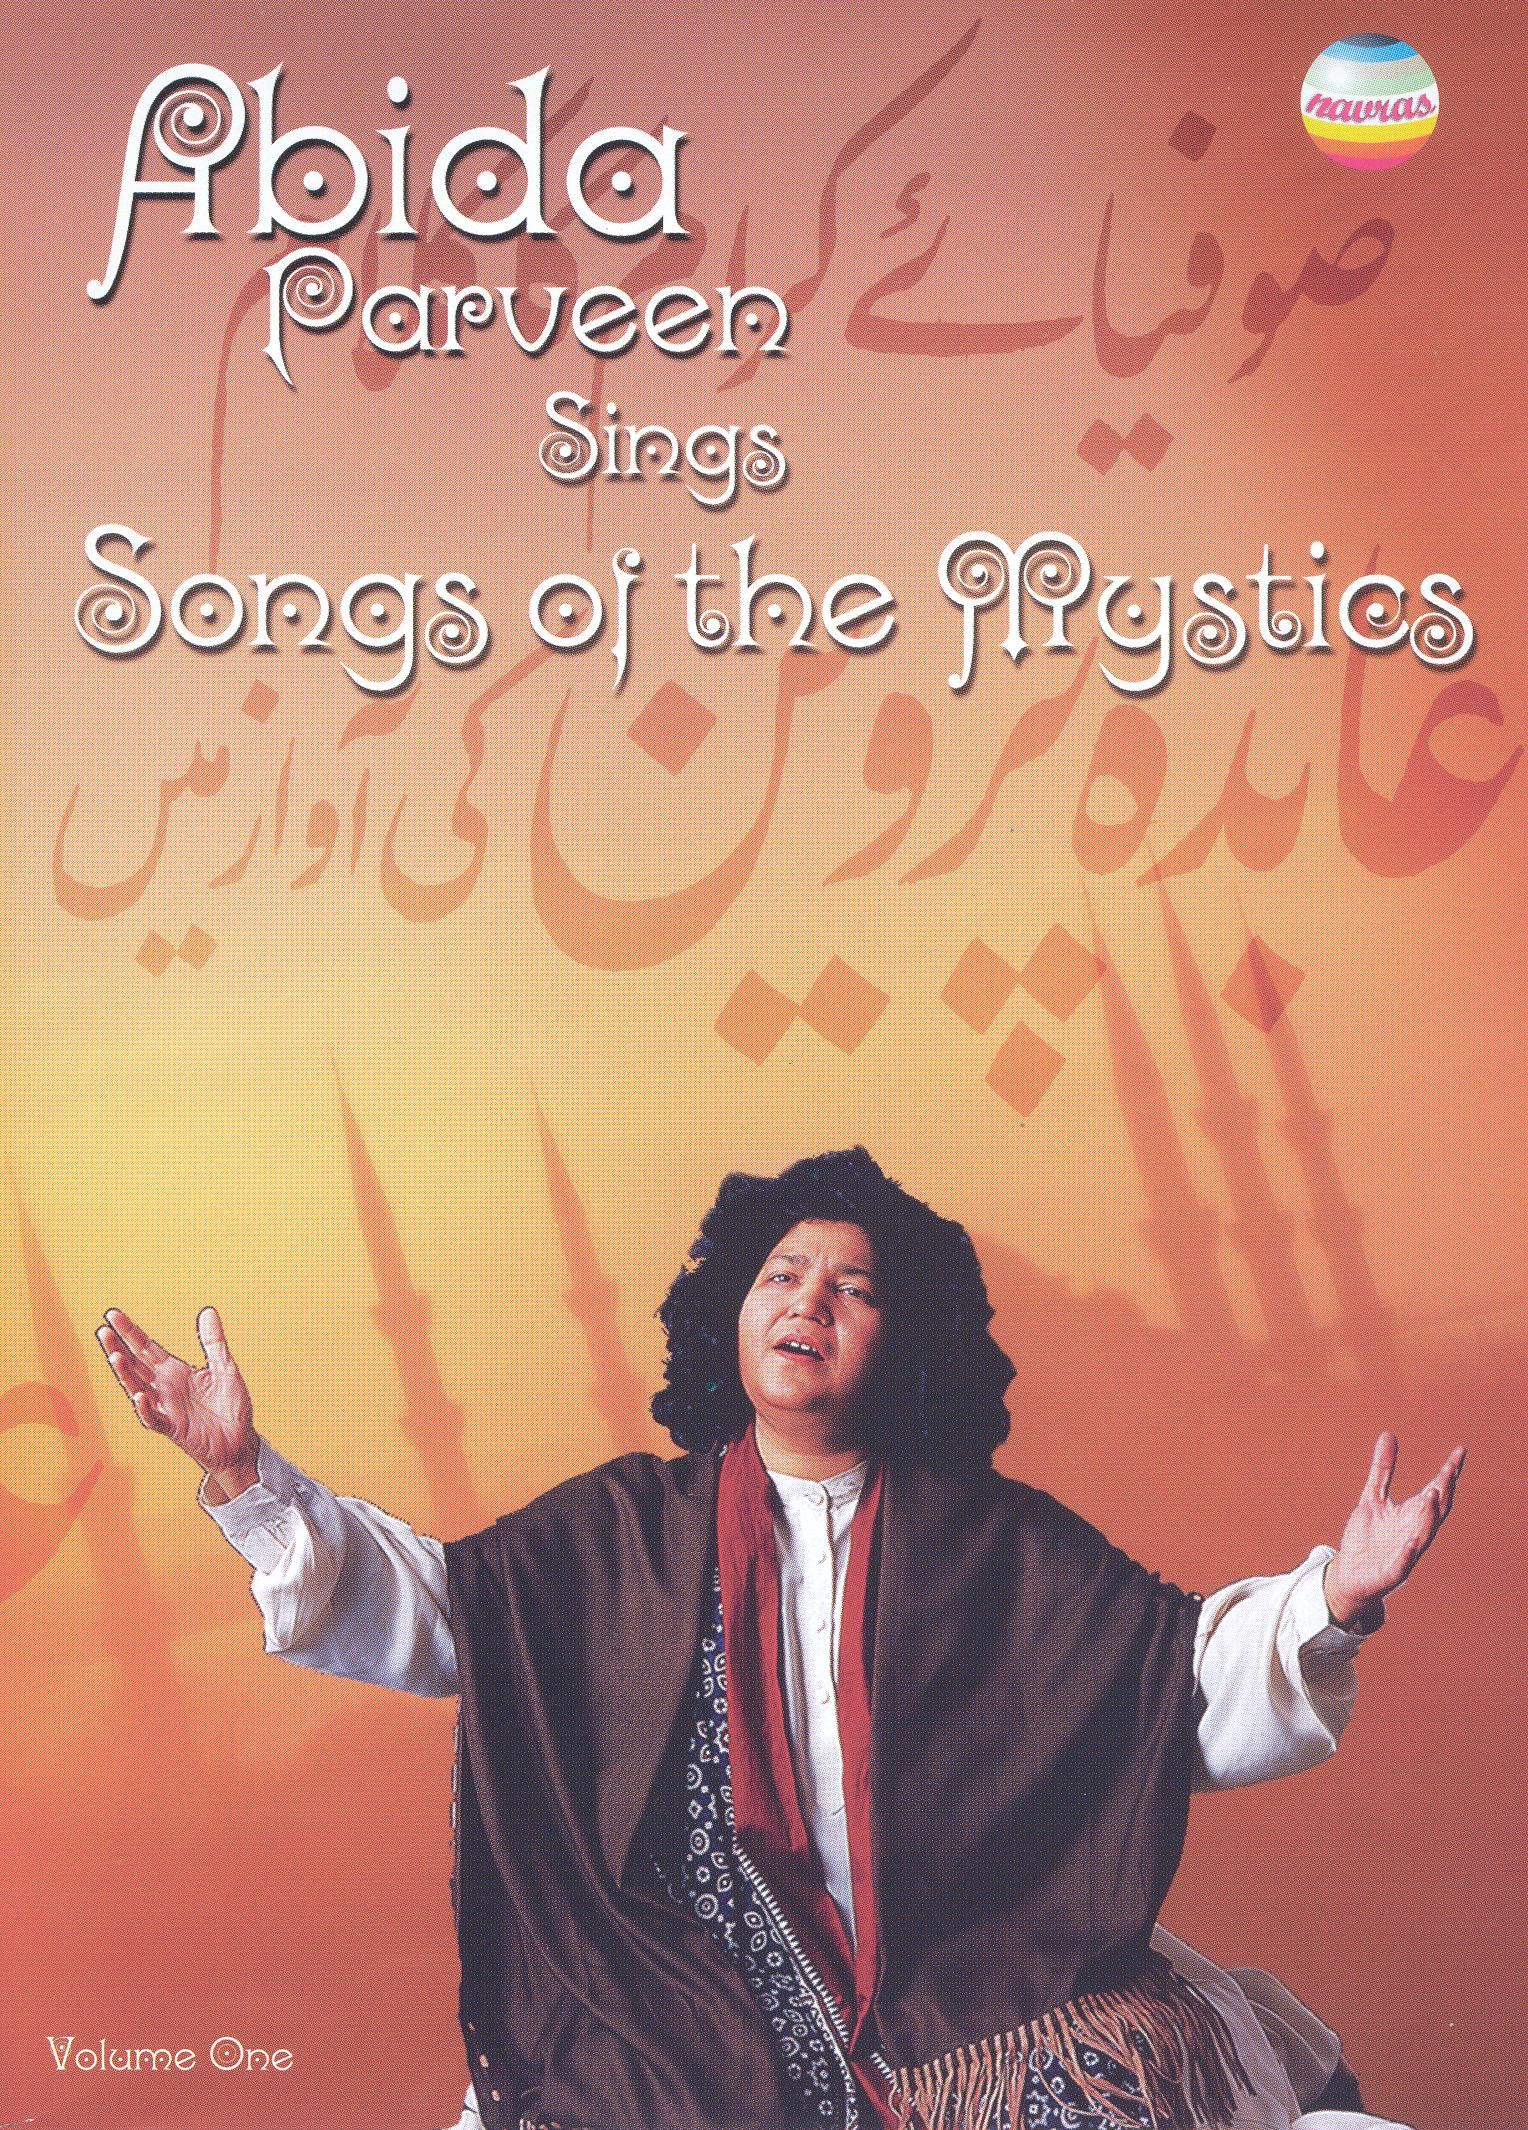 Abida Parveen Sings Songs of the Mystics, Vol. 1